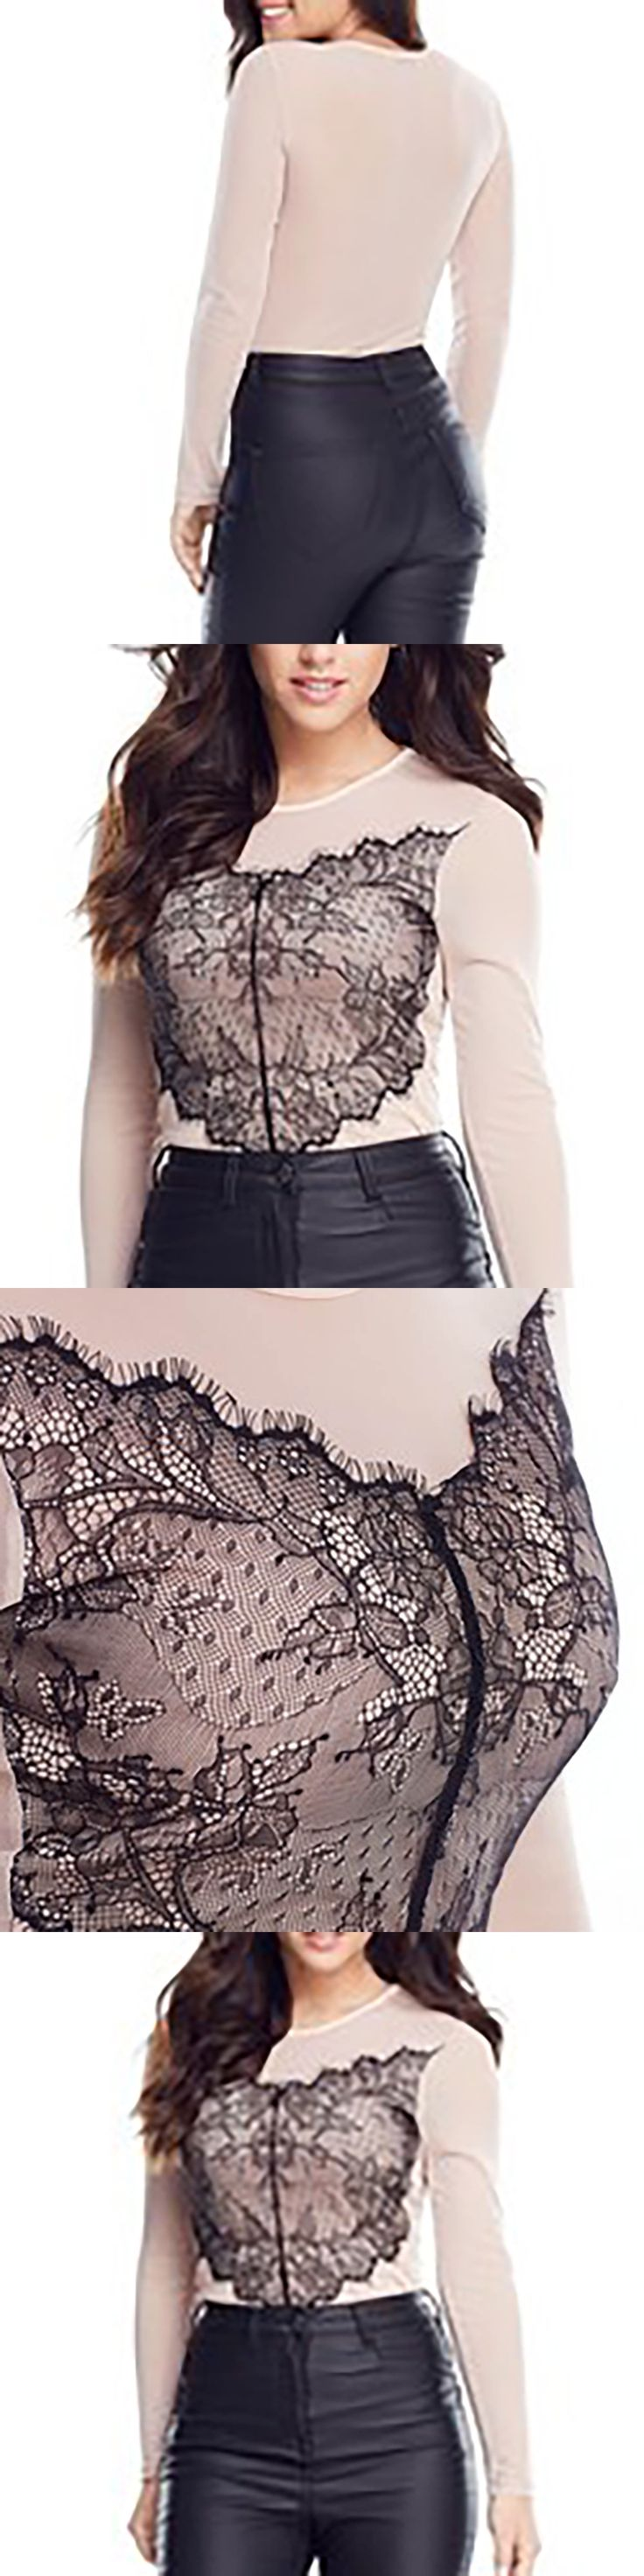 Women Summer fashion Lace Tight suit sets Girl Conjoined tights female lace One-body tight wear patchwork leotard Women's Sets